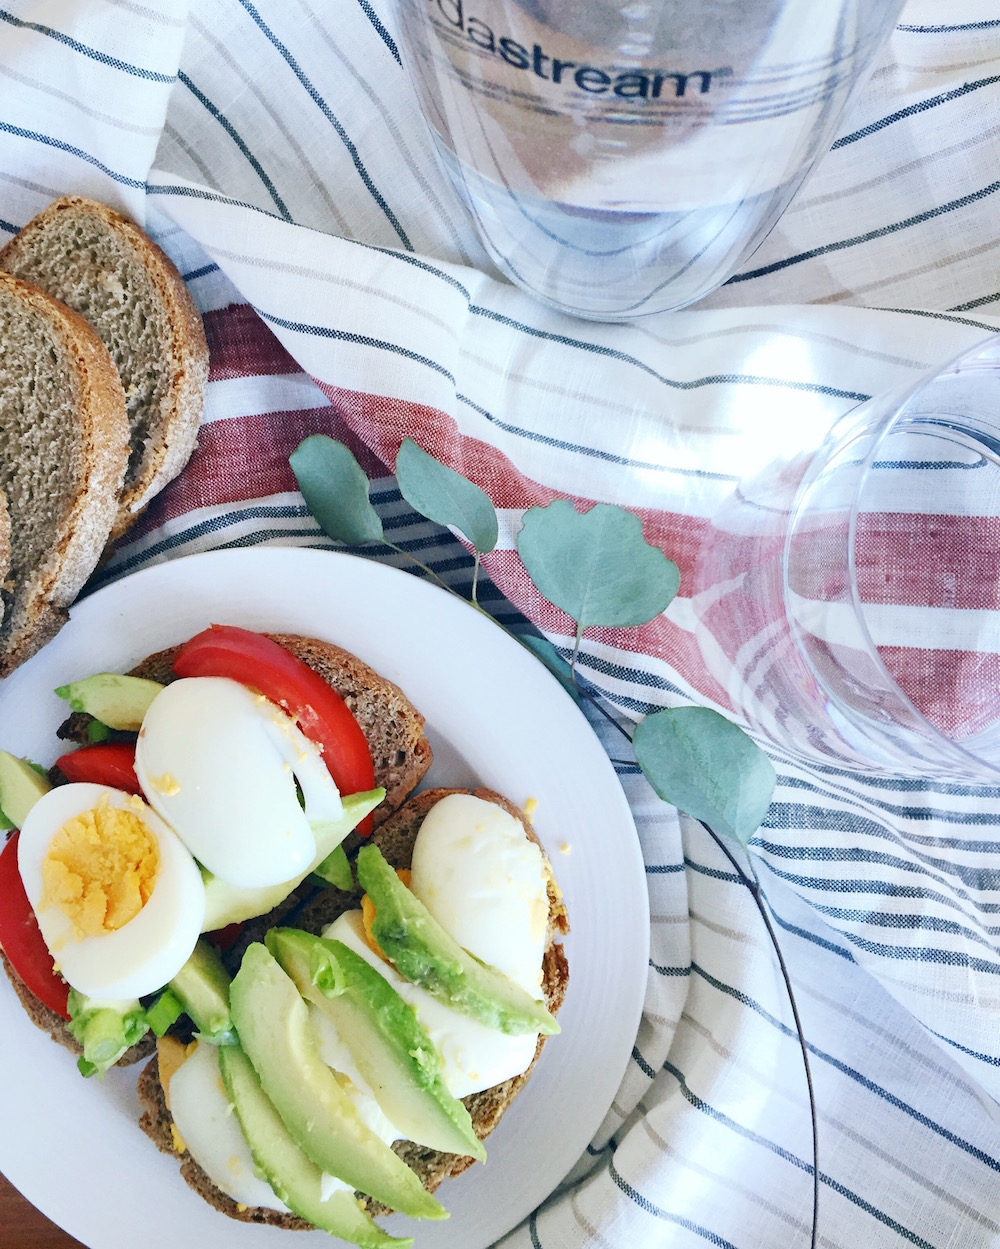 Avocado, eggs, and tomato on sourdough bread served with SodaStream sparkling water.